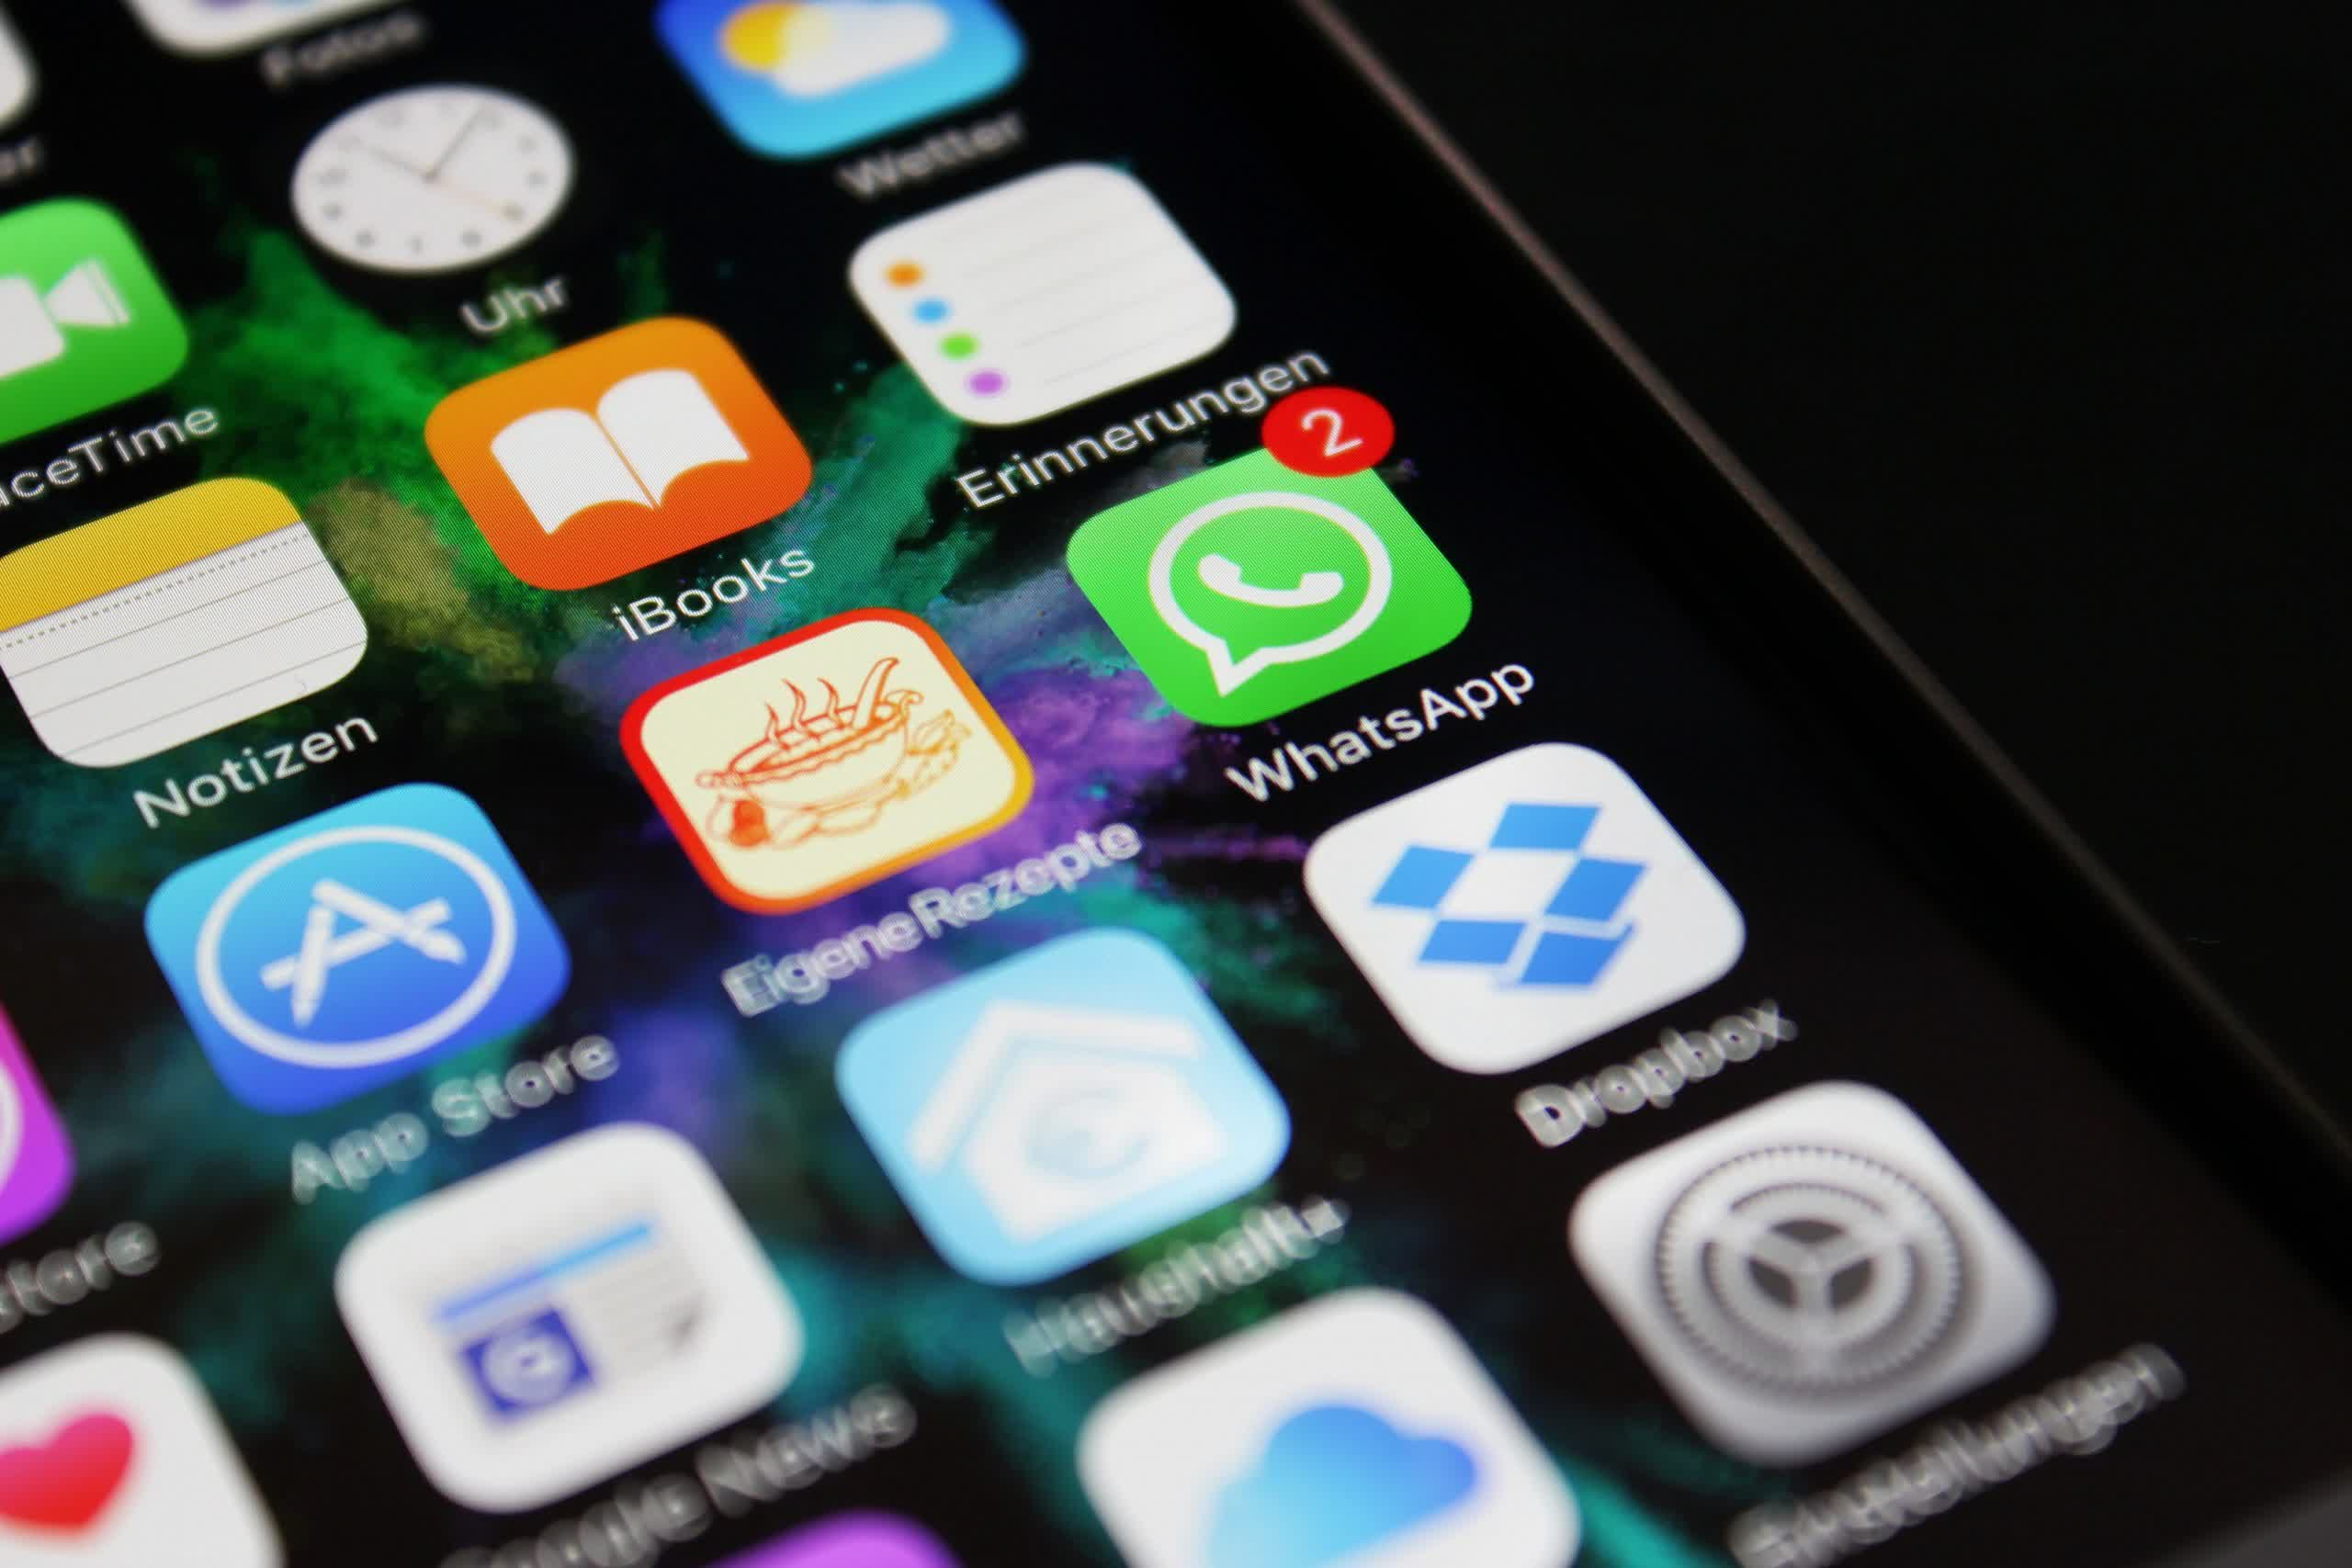 WhatsApp fined a record $267 million for GDPR violations